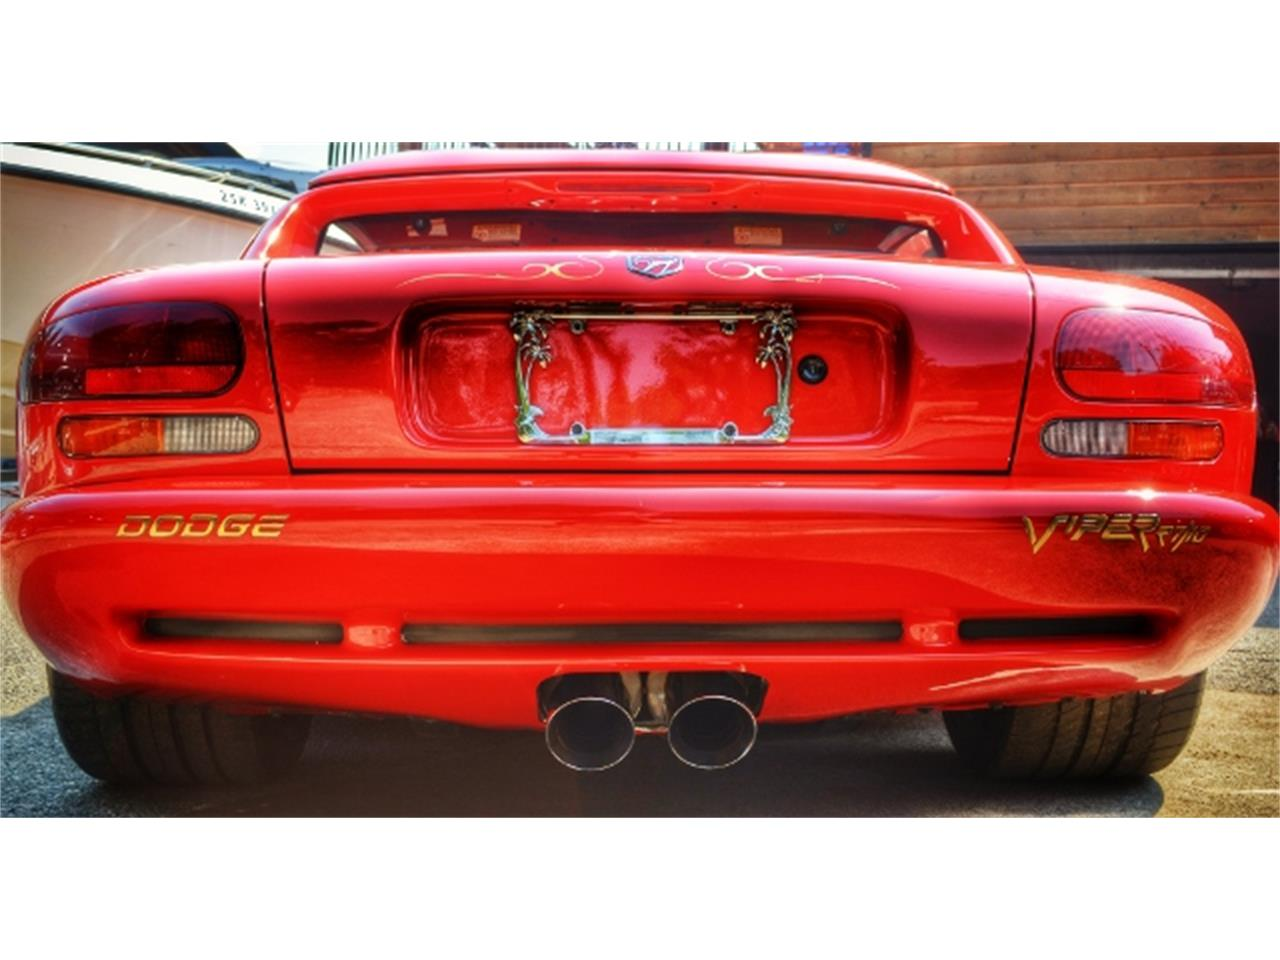 Large Picture of '01 Dodge Viper - $47,500.00 - CZ4T